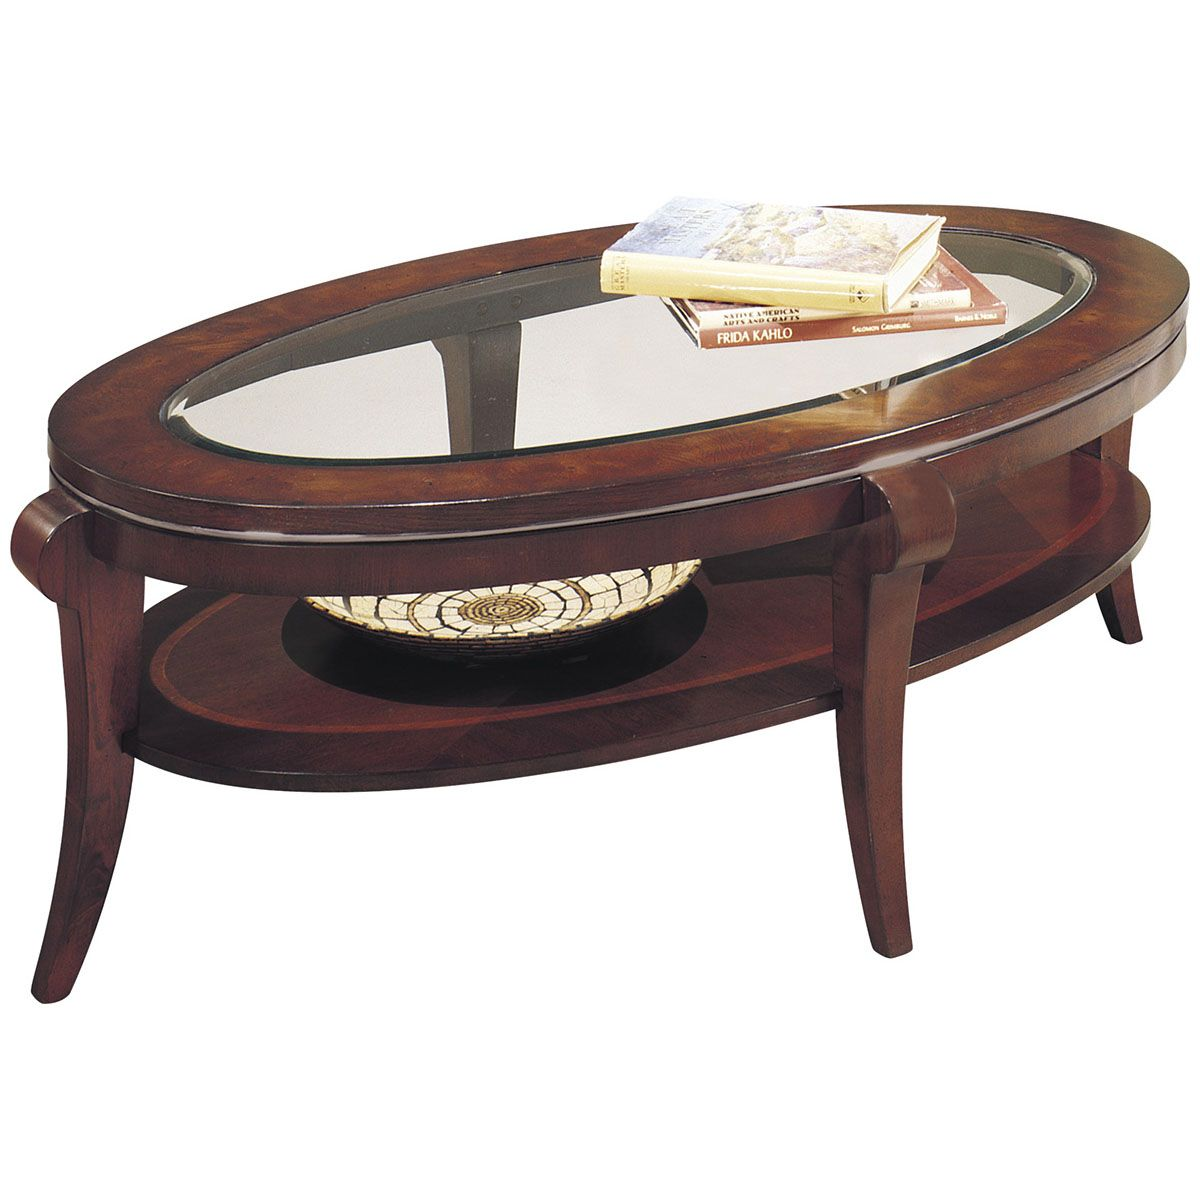 Incroyable Bassett Mirror Ashland Heights Oval Cocktail Table 8436 140EC